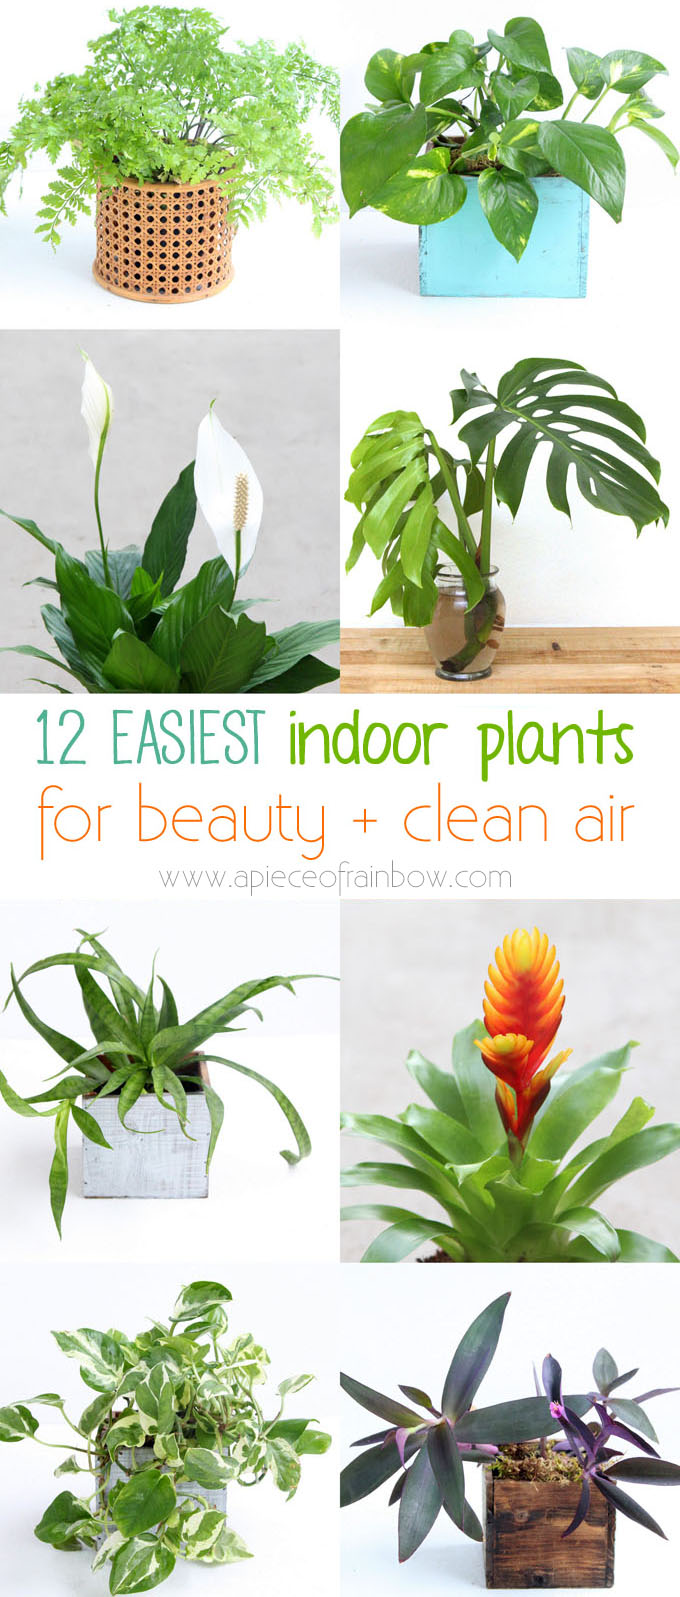 Plants With Purpose 5 Types Of Greenery You Need In Your